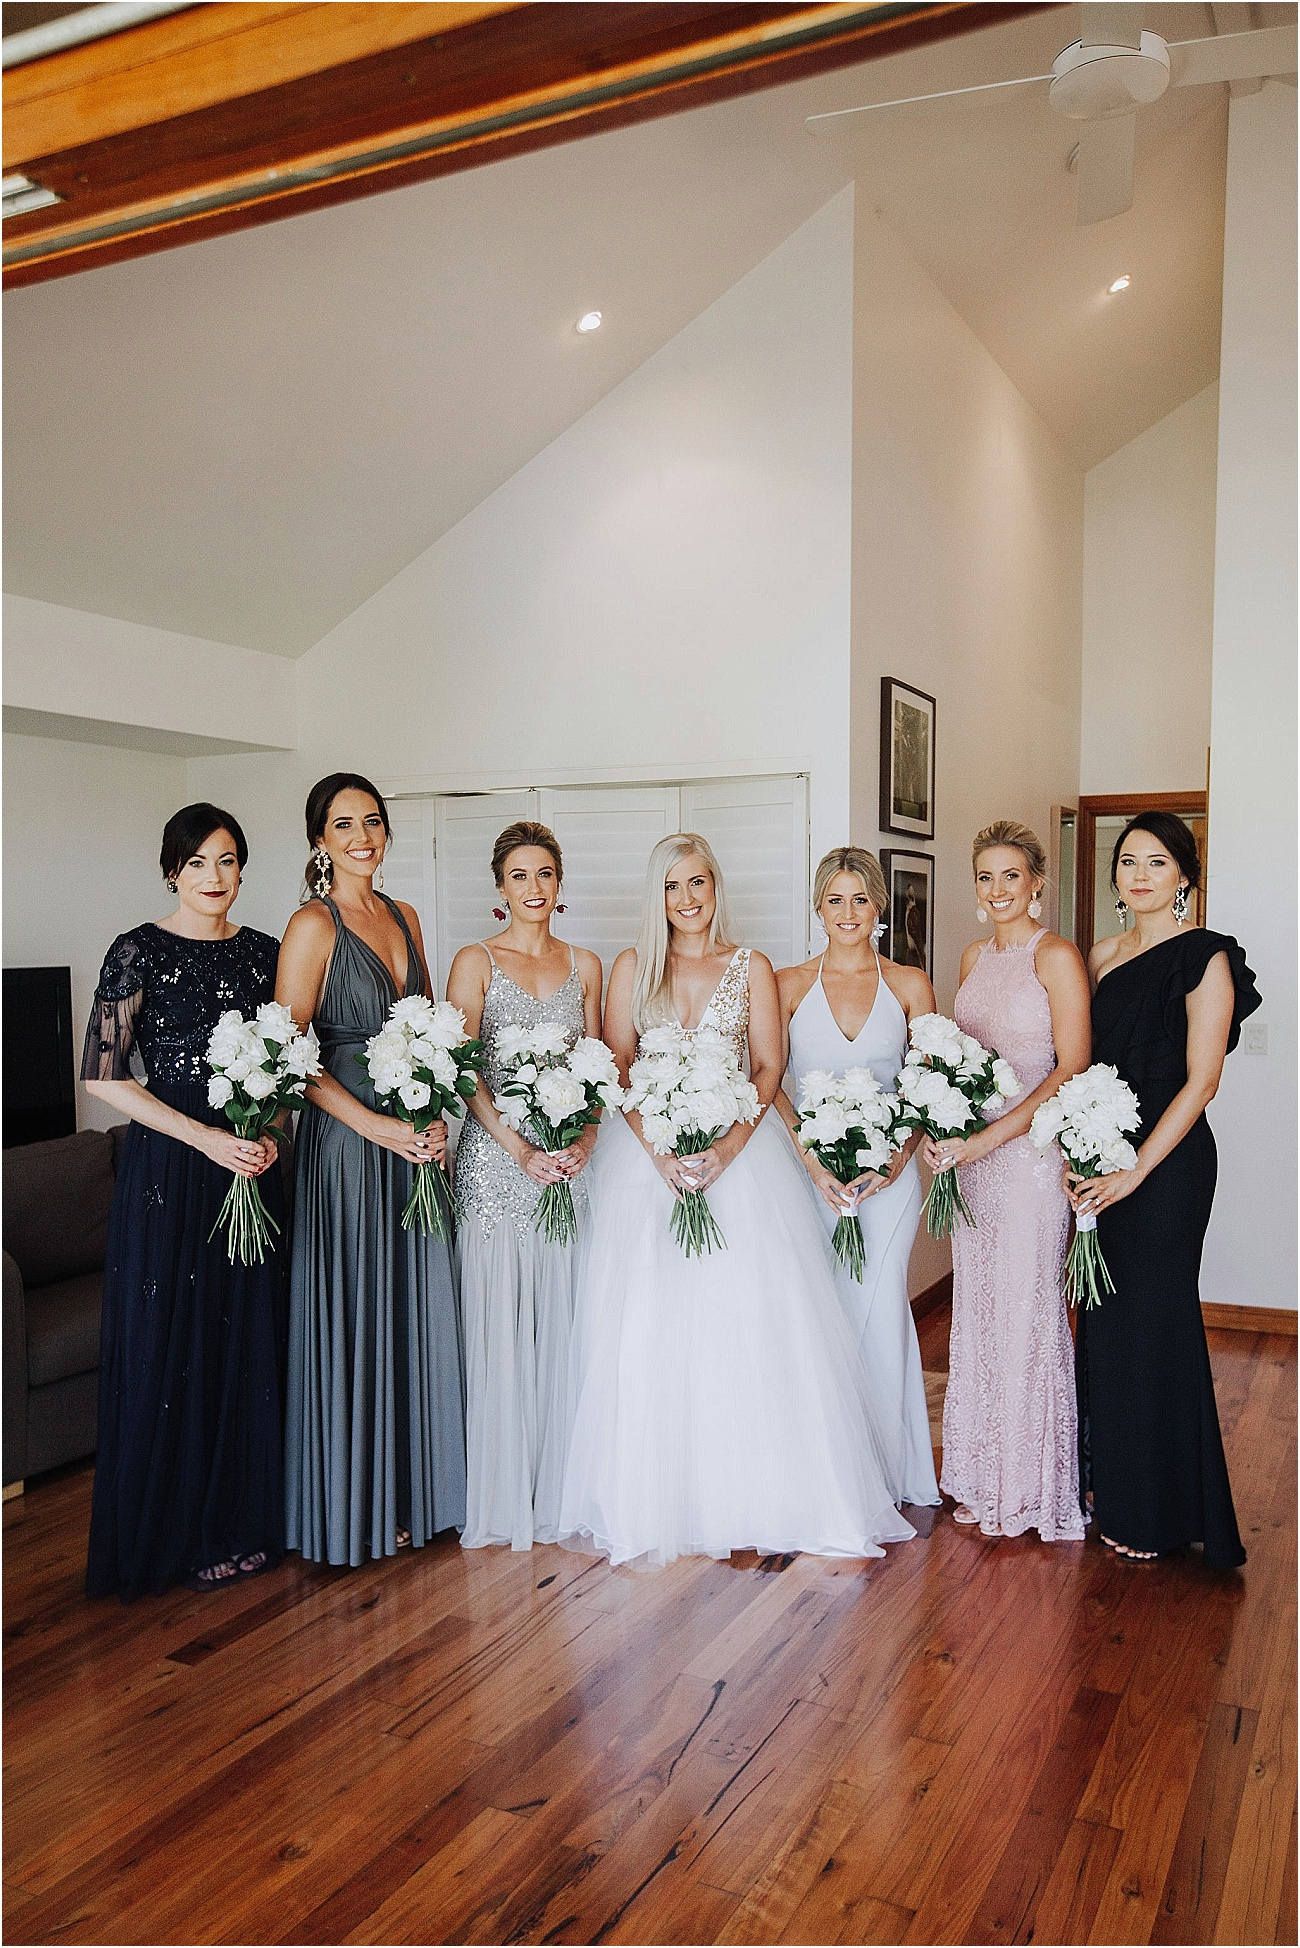 Modern white wedding bouquets featuring roses